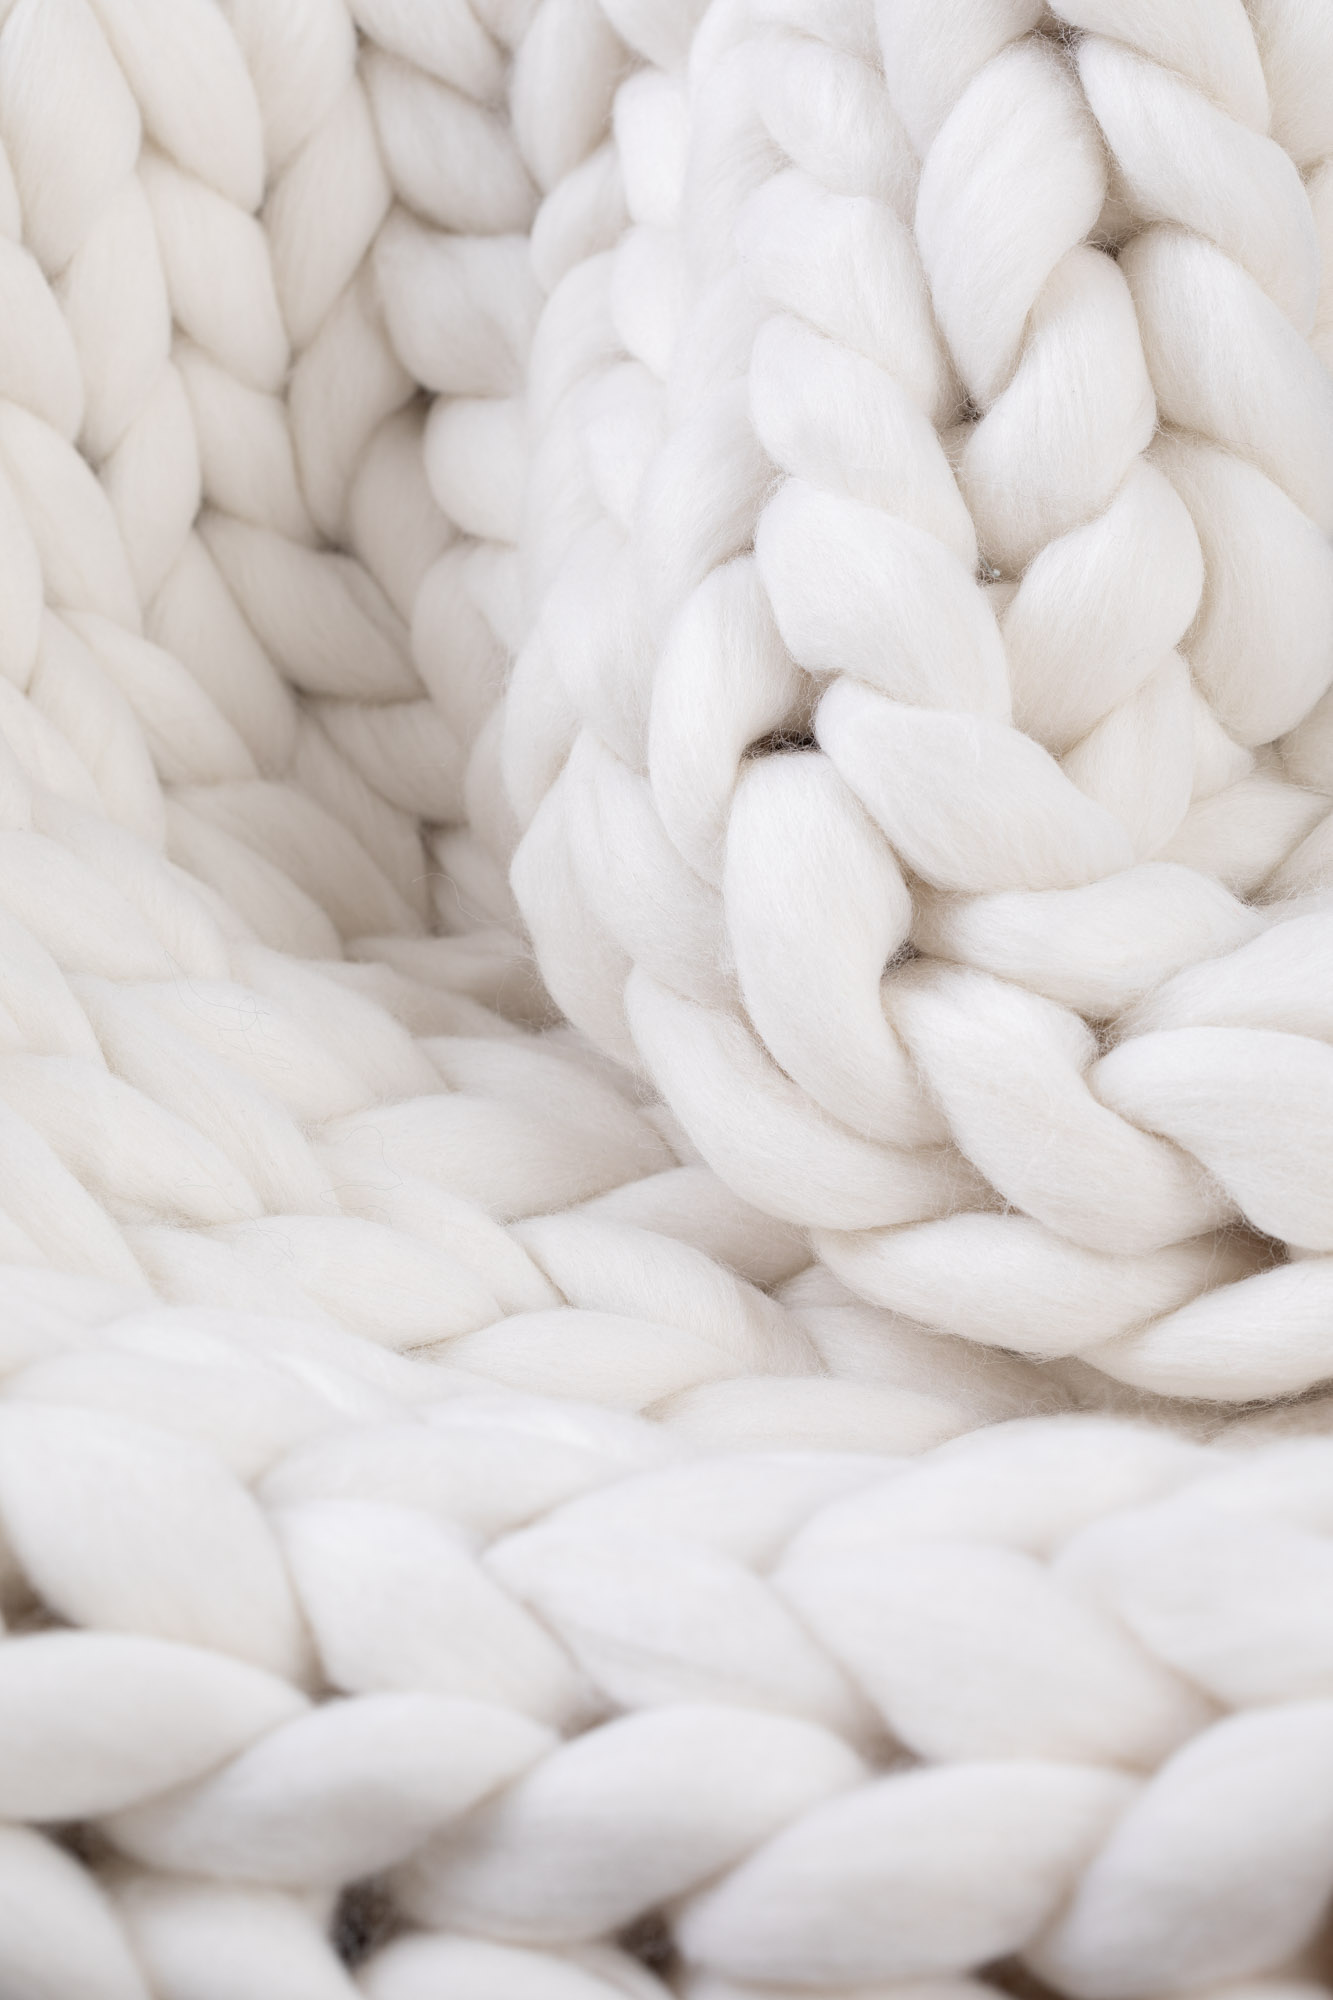 CUP OF TEA MERINO WOOL CHUNKY BLANKET WHITE